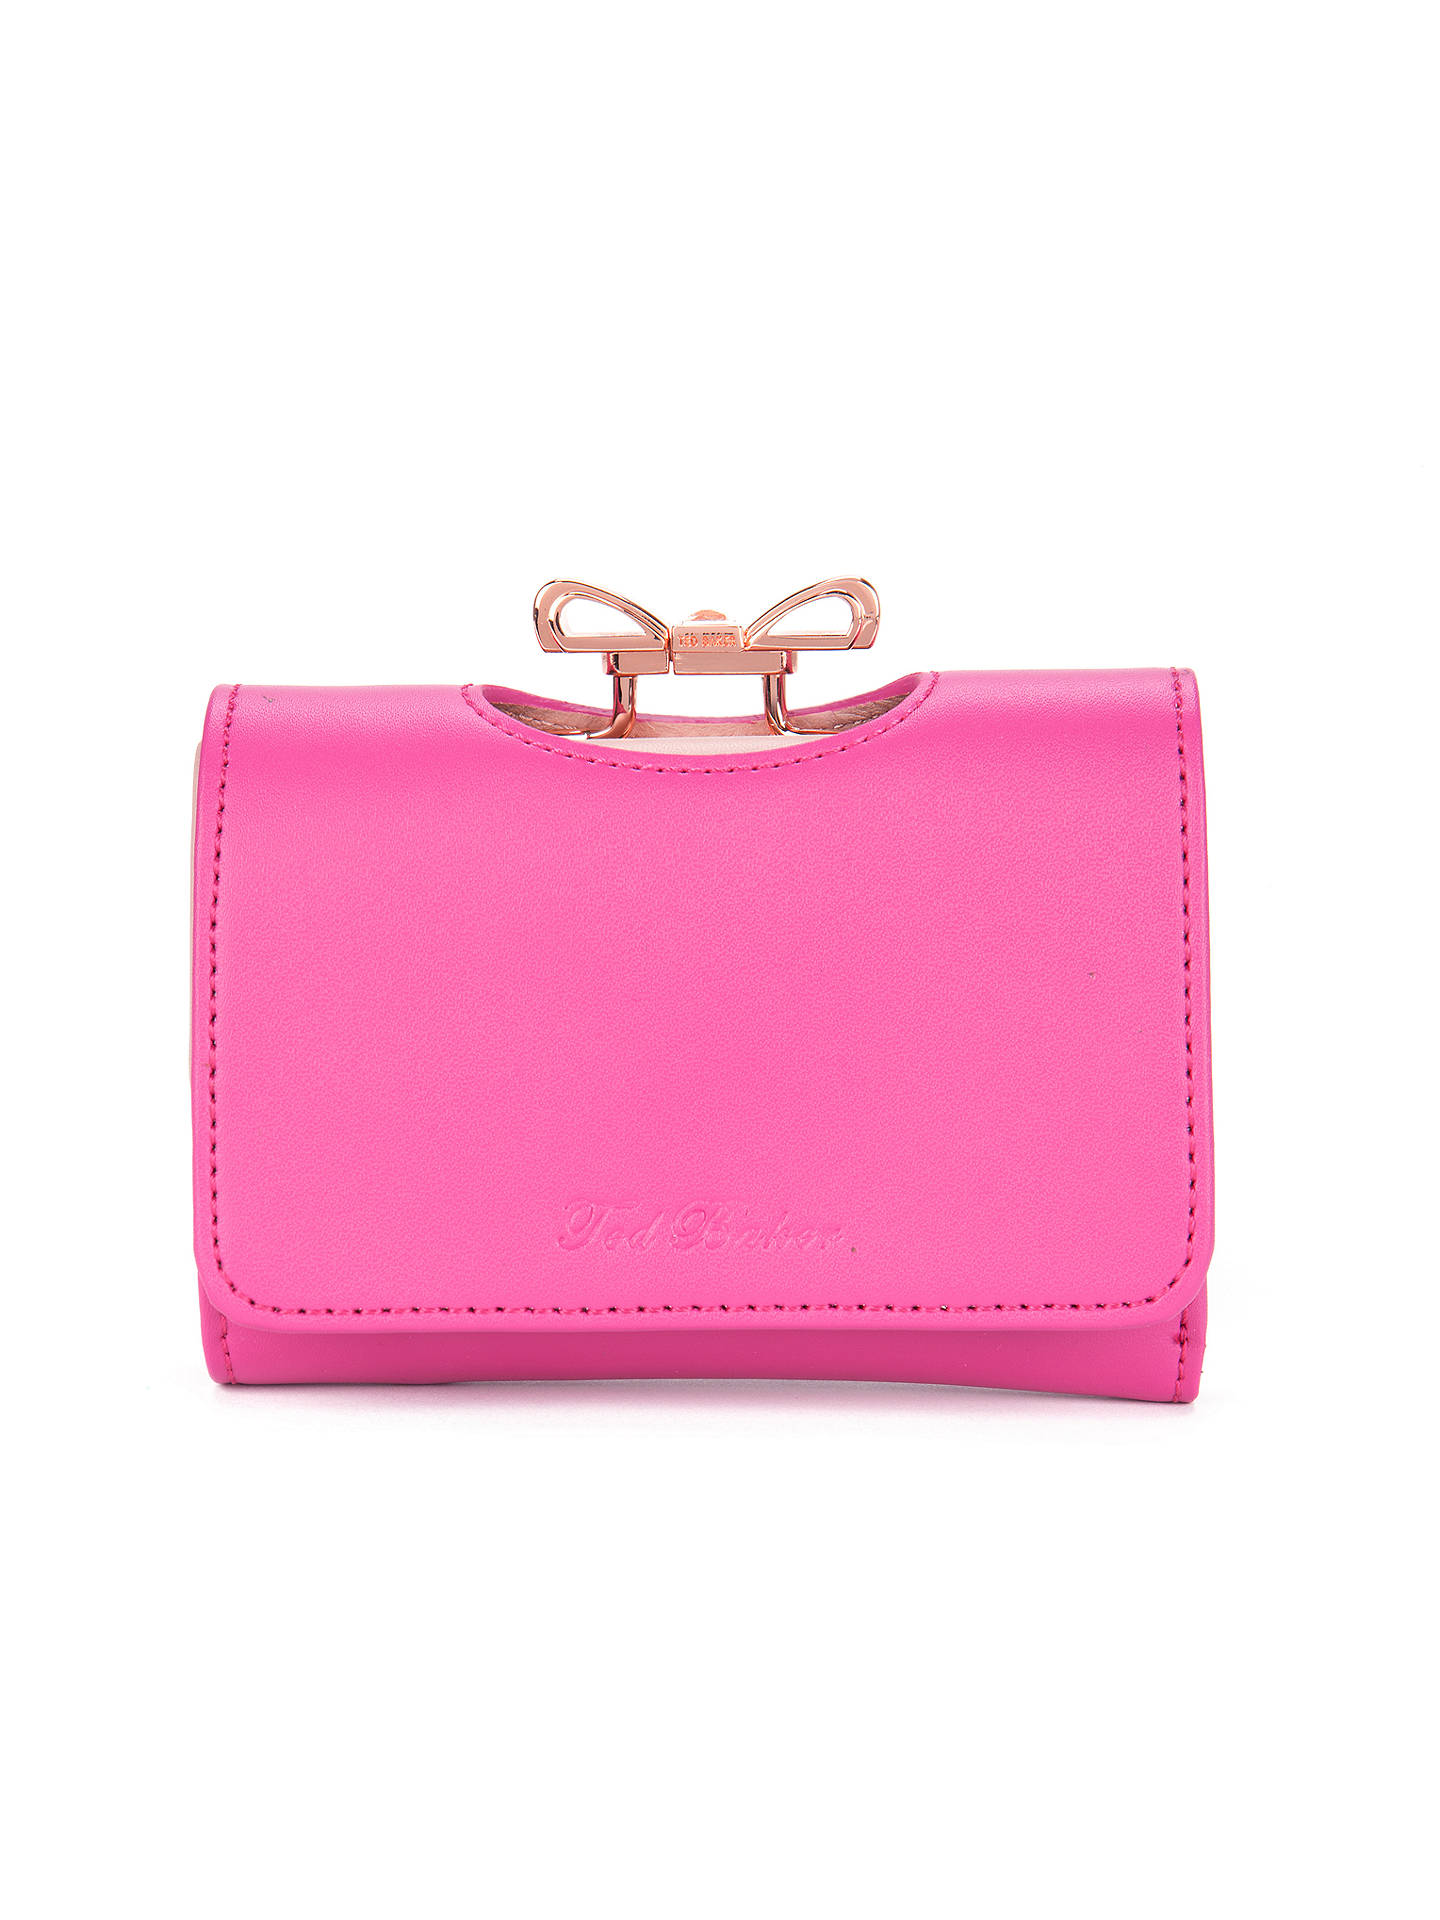 fed1869566c5 Ted Baker Meelar Small Bow Colour Block Matinee Leather Purse at ...